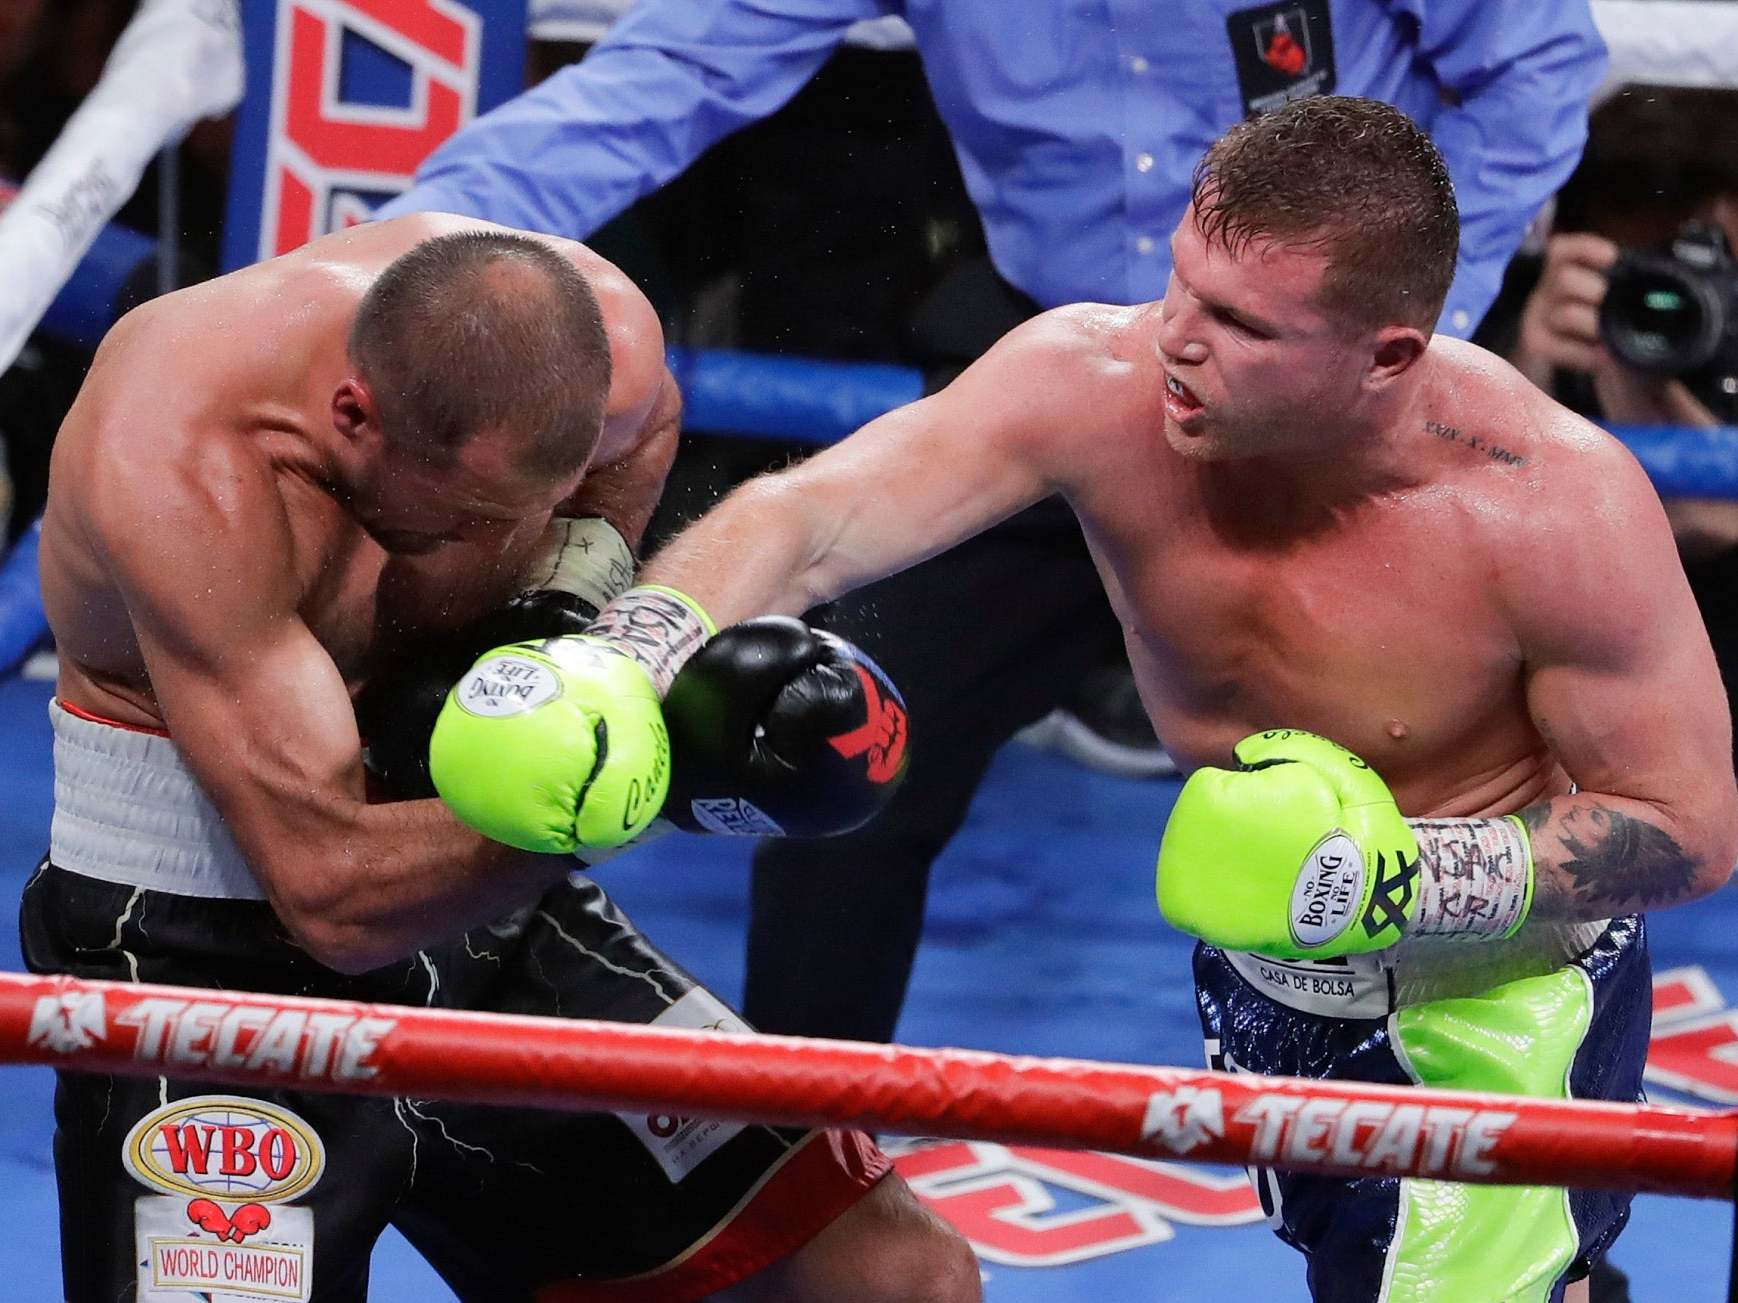 Pound-for-pound rankings: Canelo Alvarez rises after Kovalev win to become four-weight world champion